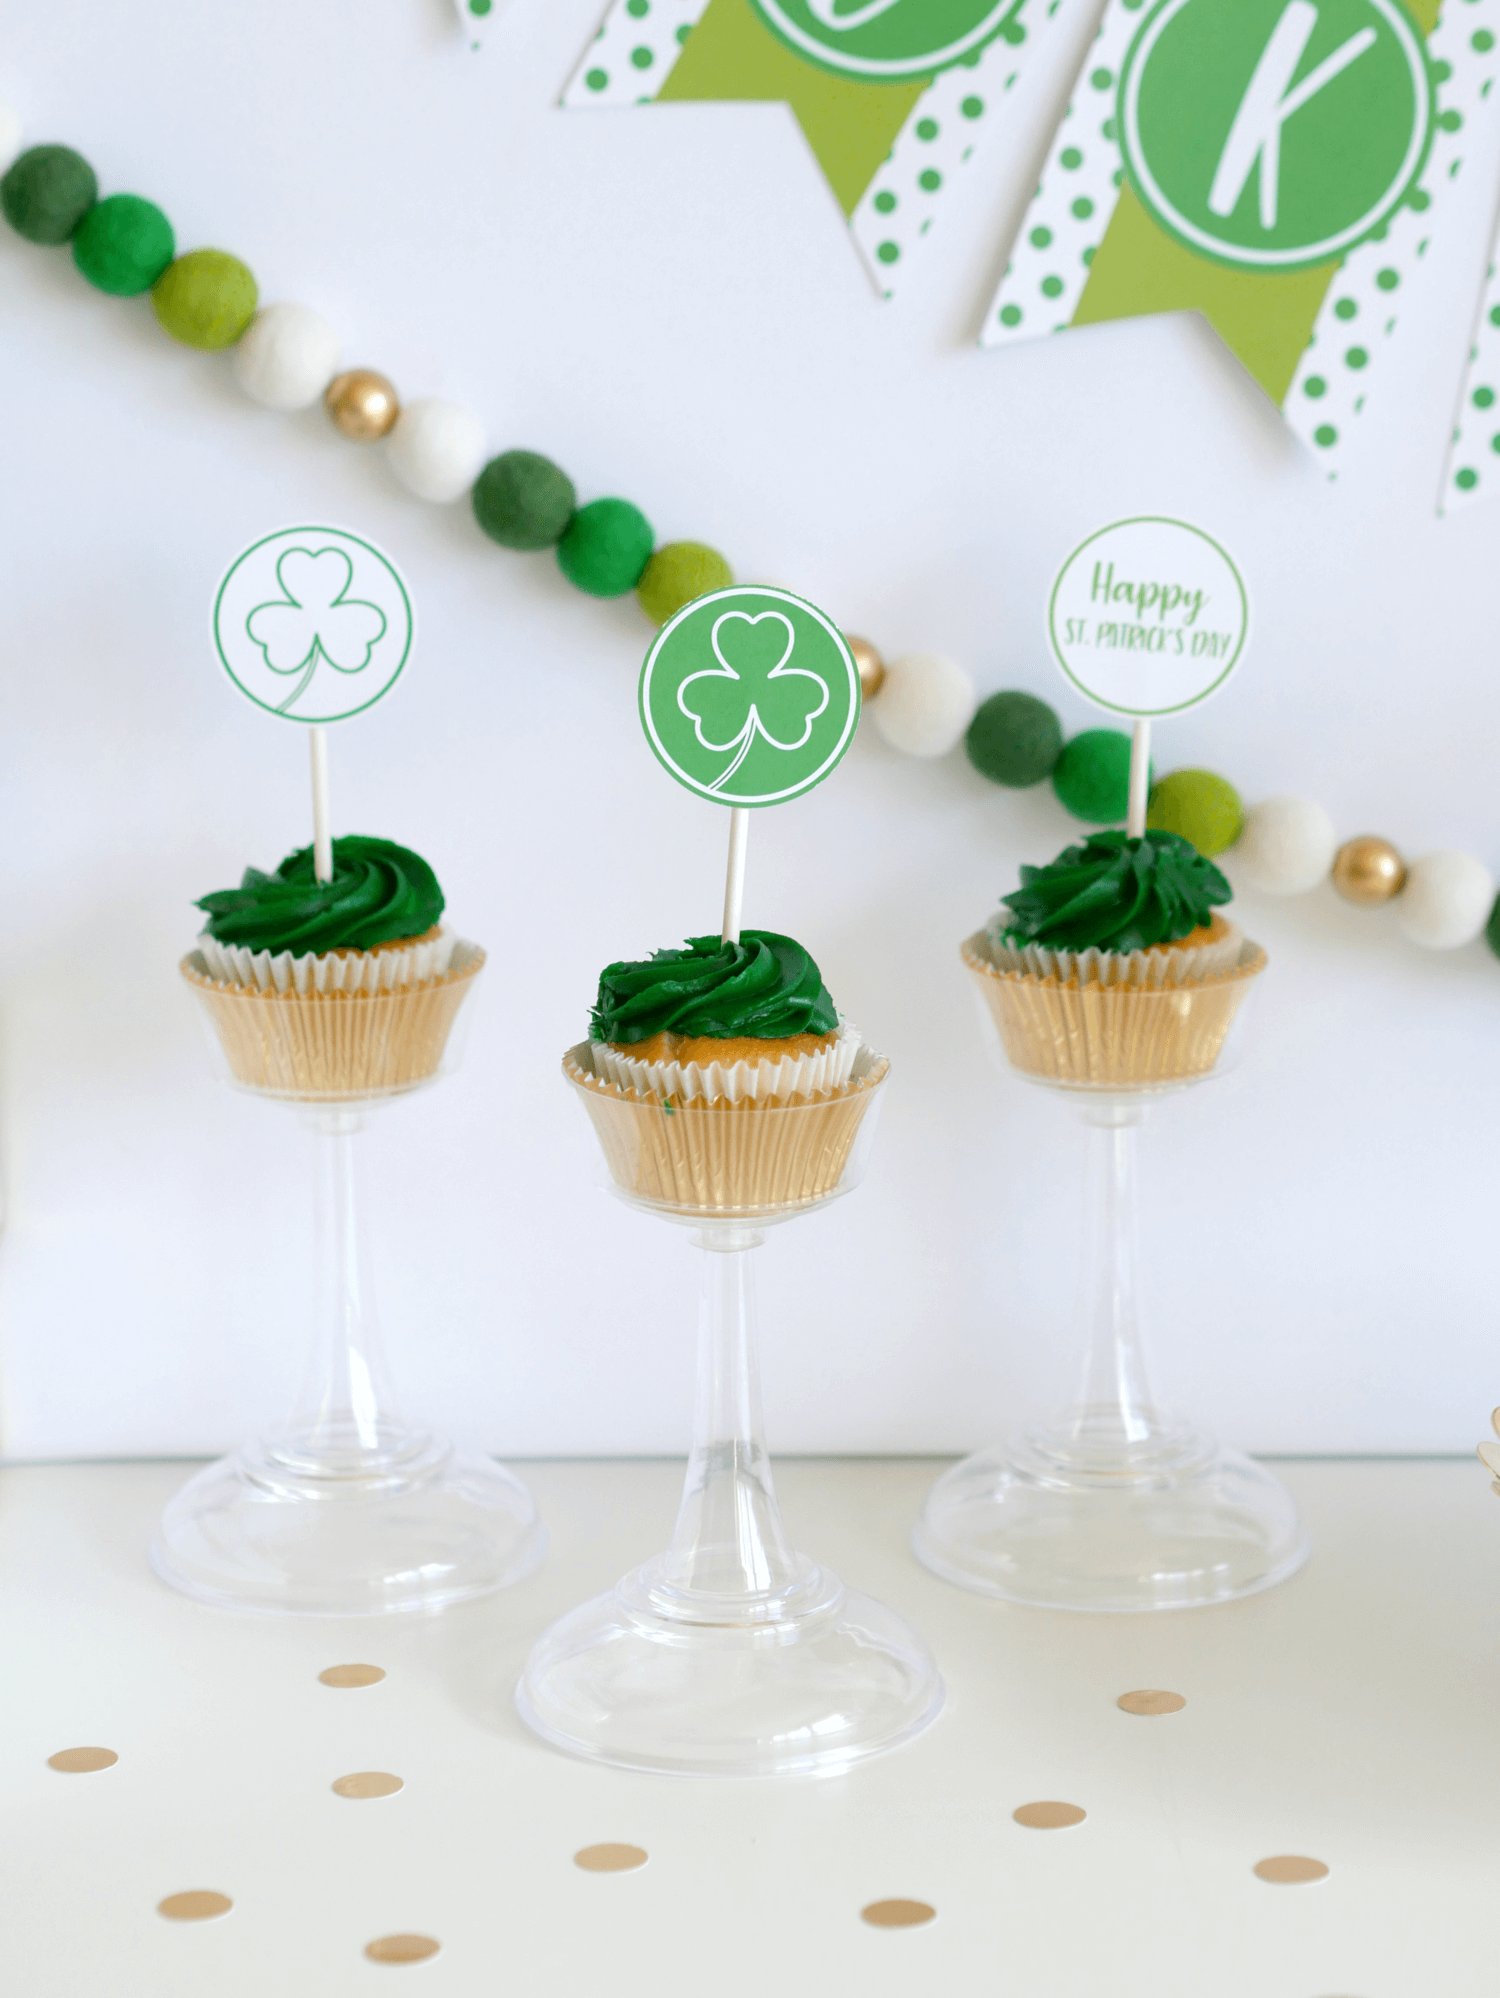 Elevate your cupcakes on these charming cupcake stands and make a statement at your next party. PS: These cupcake toppers are available as a free printable at Mint Event Design www.minteventdesign.com #partyideas #partydecorations #freeprintables #saintpatricksday #stpatricksday #shamrock #cupcakes